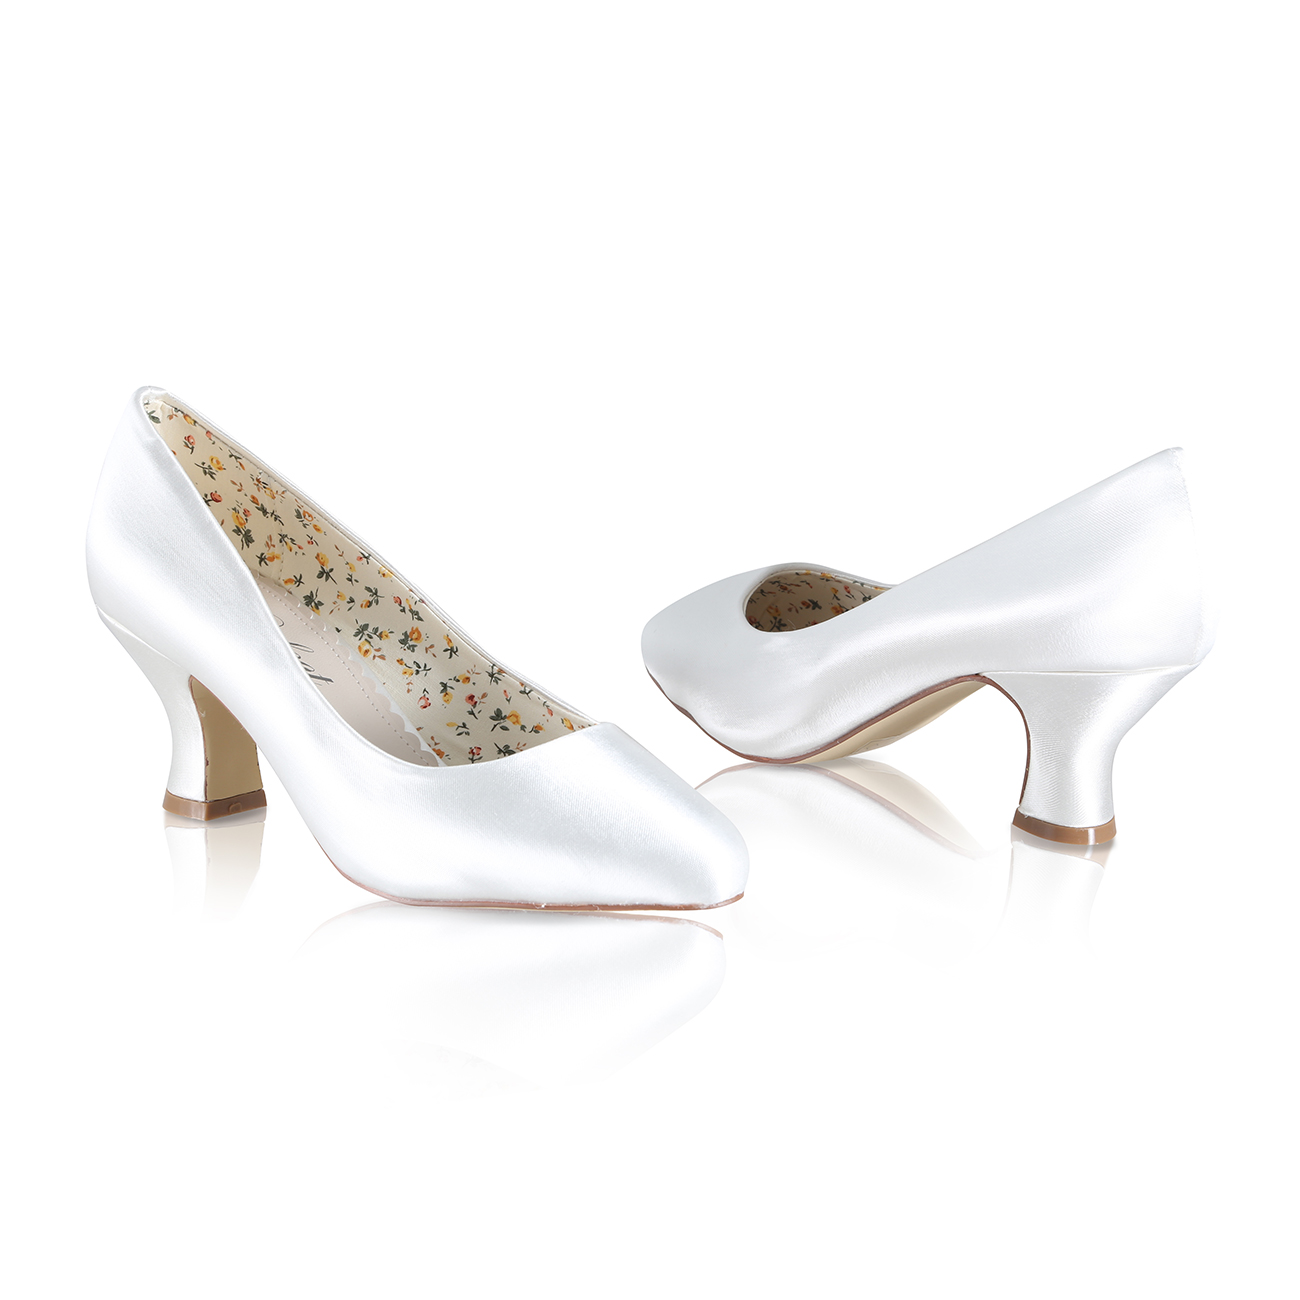 mable dyeable ivory satin bridal shoes with almond toe and mid height heel